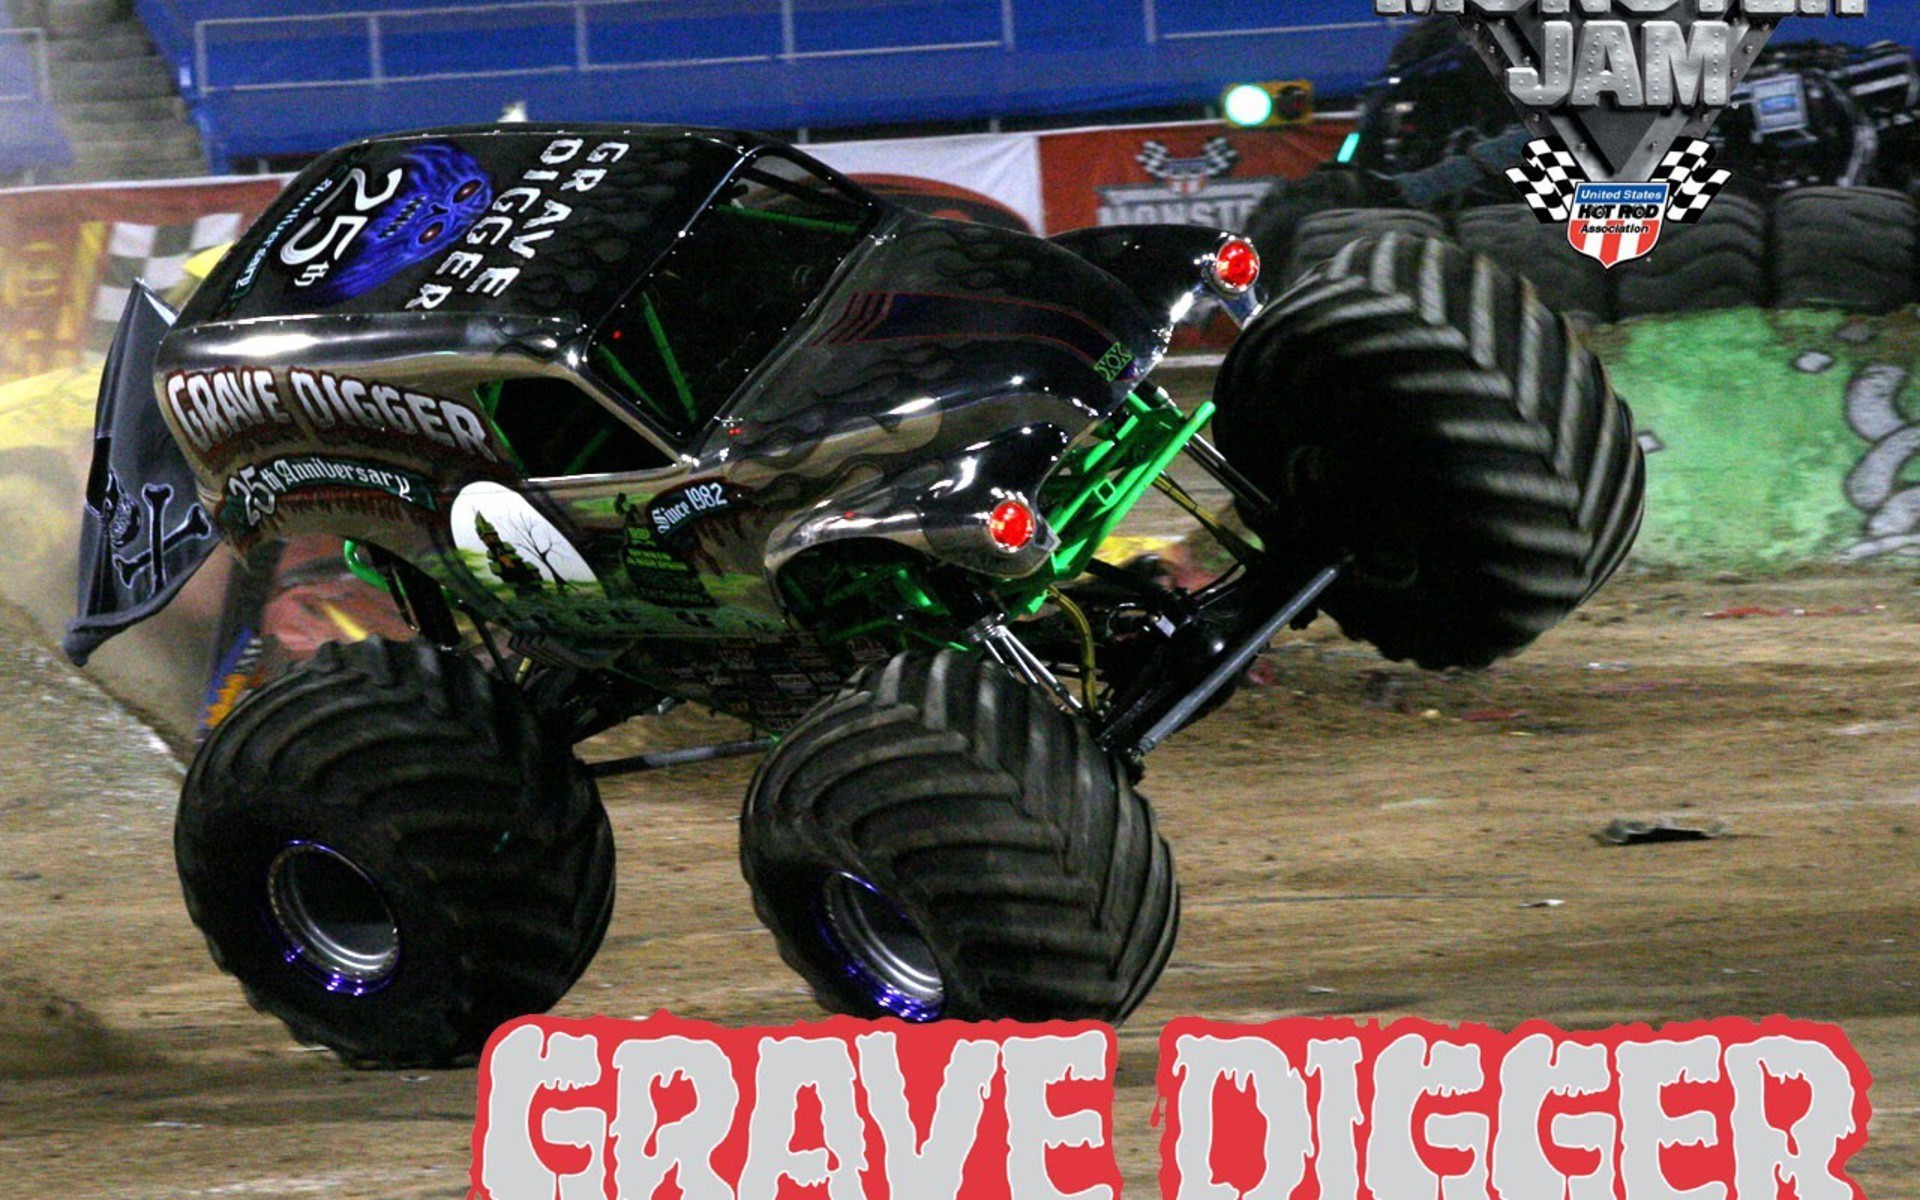 Grave Digger Monster Truck Wallpaper 54 Images